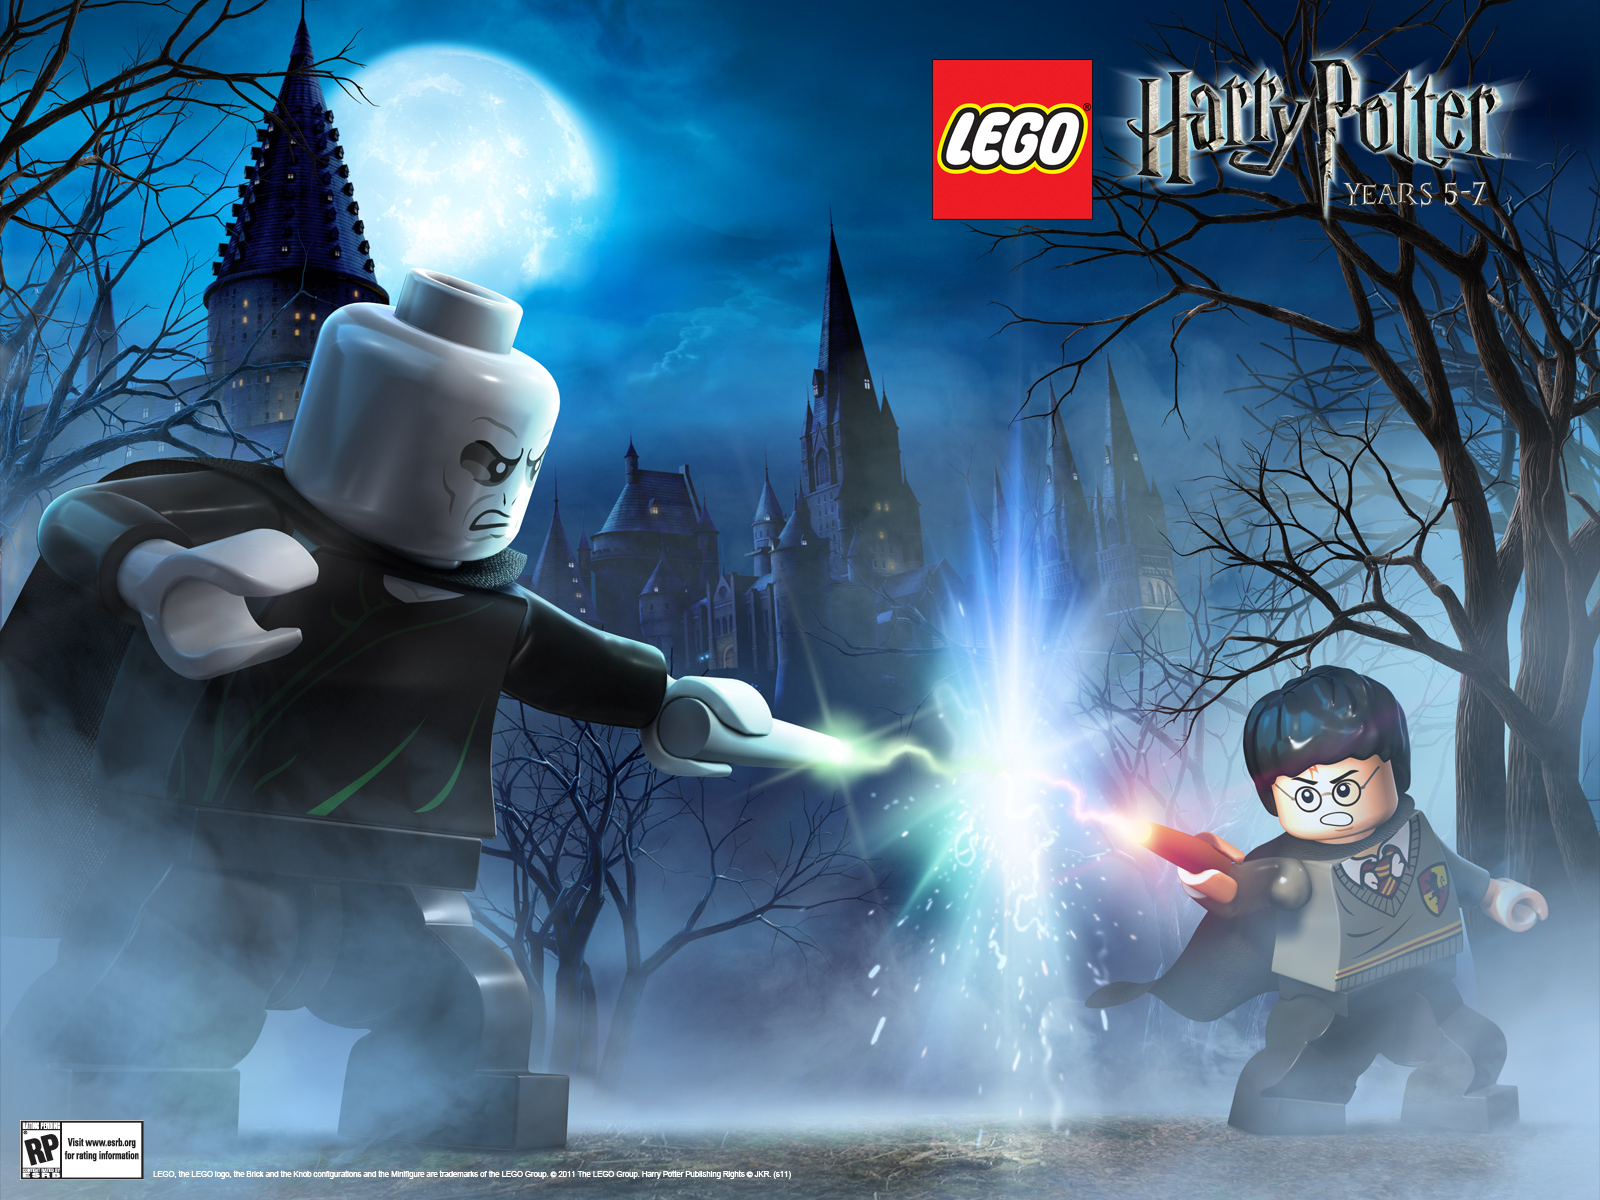 lego harry potter years 5 7 hardware issue Then